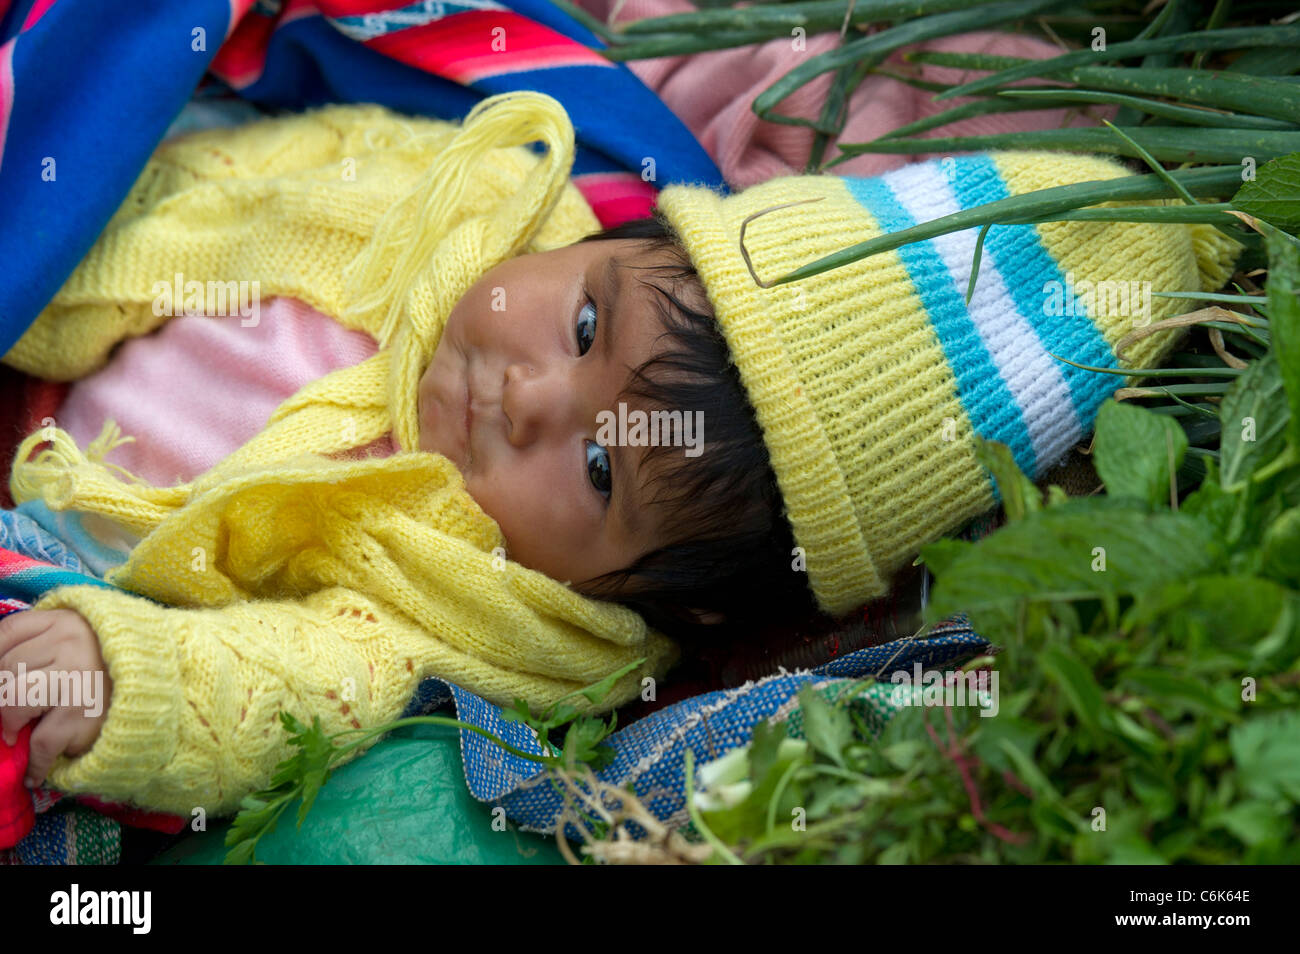 Close-up of a baby lying at a market stall at Sunday market, Pisac, Cuzco, Peru - Stock Image